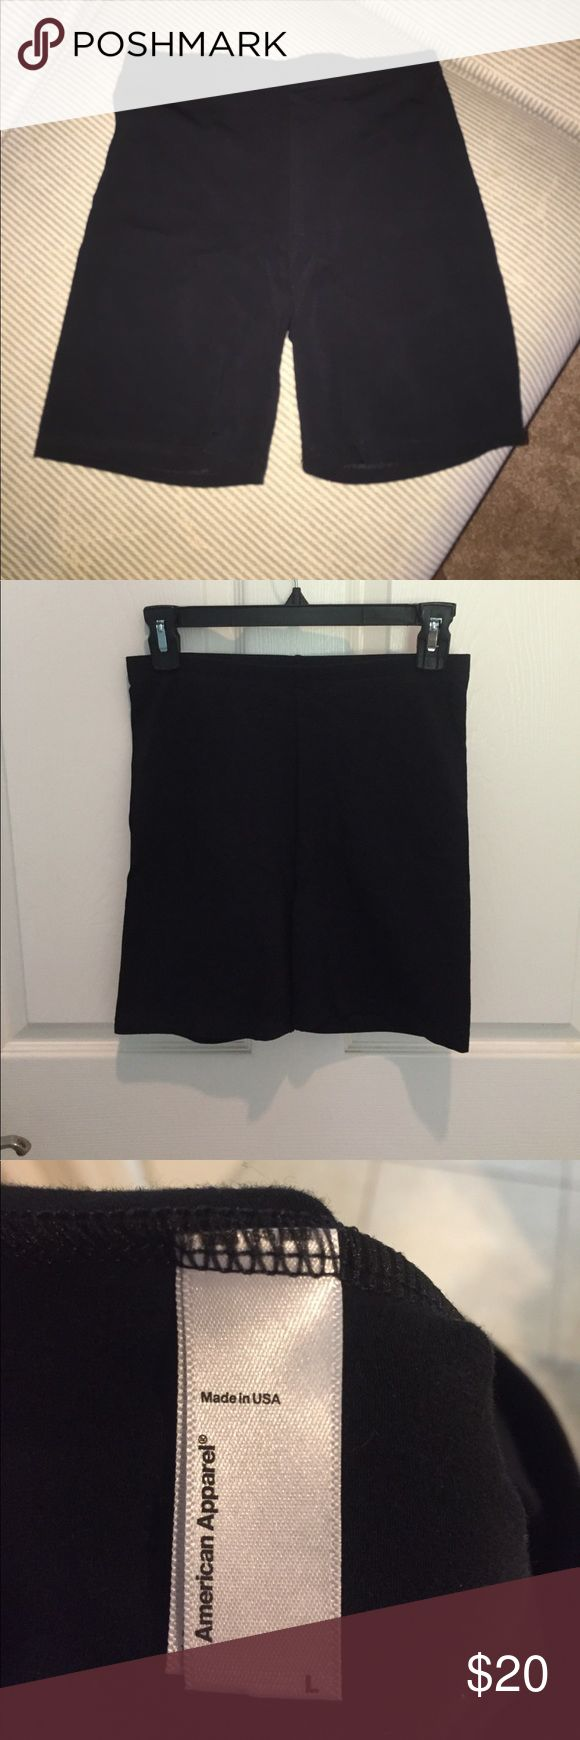 American Apparel black spandex shorts Mid-thigh length black spandex shorts by American Apparel, new and never worn! Did not come with tags - ordered online American Apparel Other